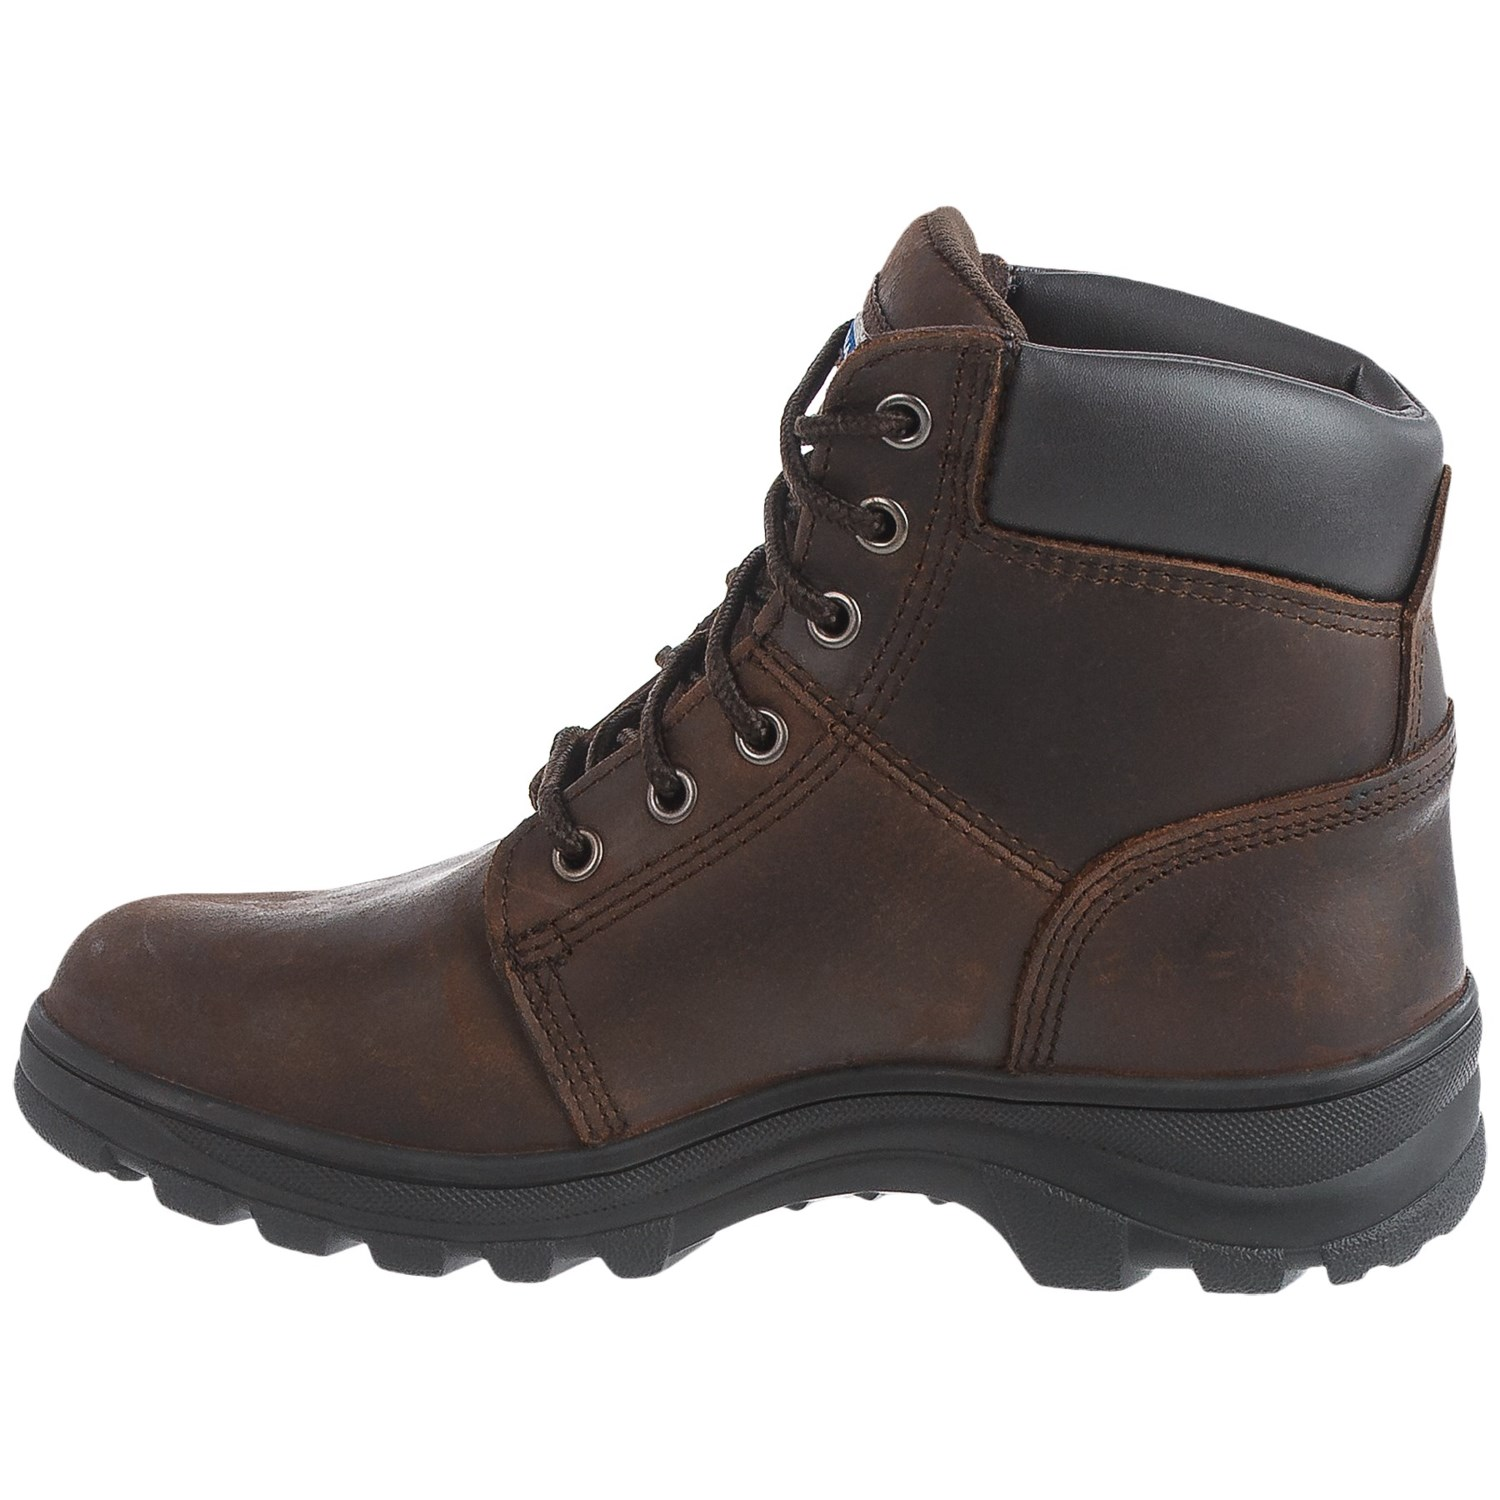 b7b0df782e8b skechers leather boots cheap   OFF55% The Largest Catalog Discounts